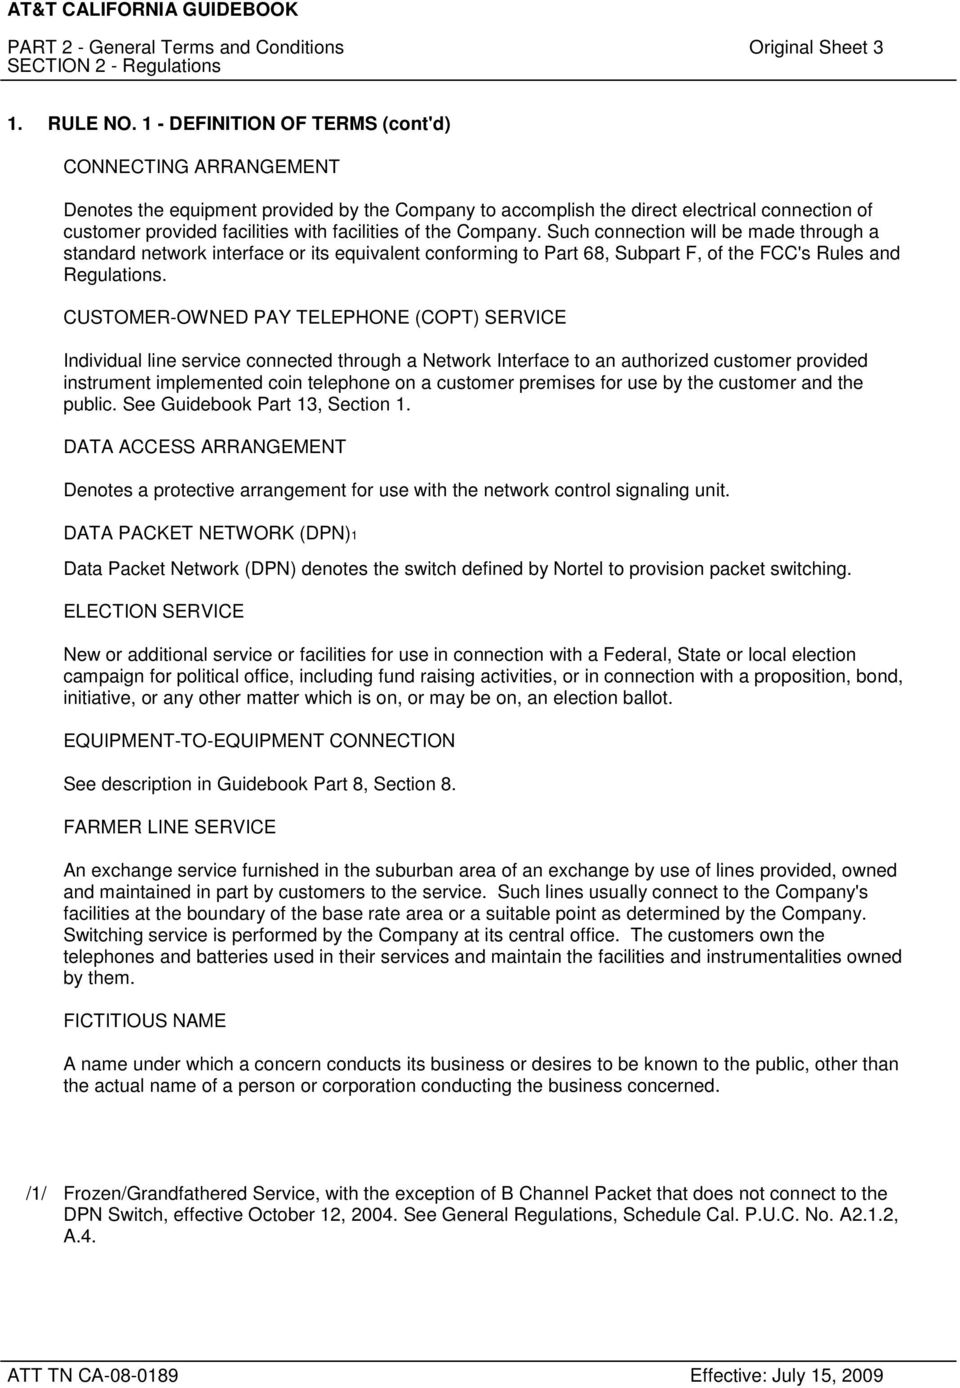 PART 2 - General Terms and Conditions 2nd Revised Sheet 1 SECTION 2